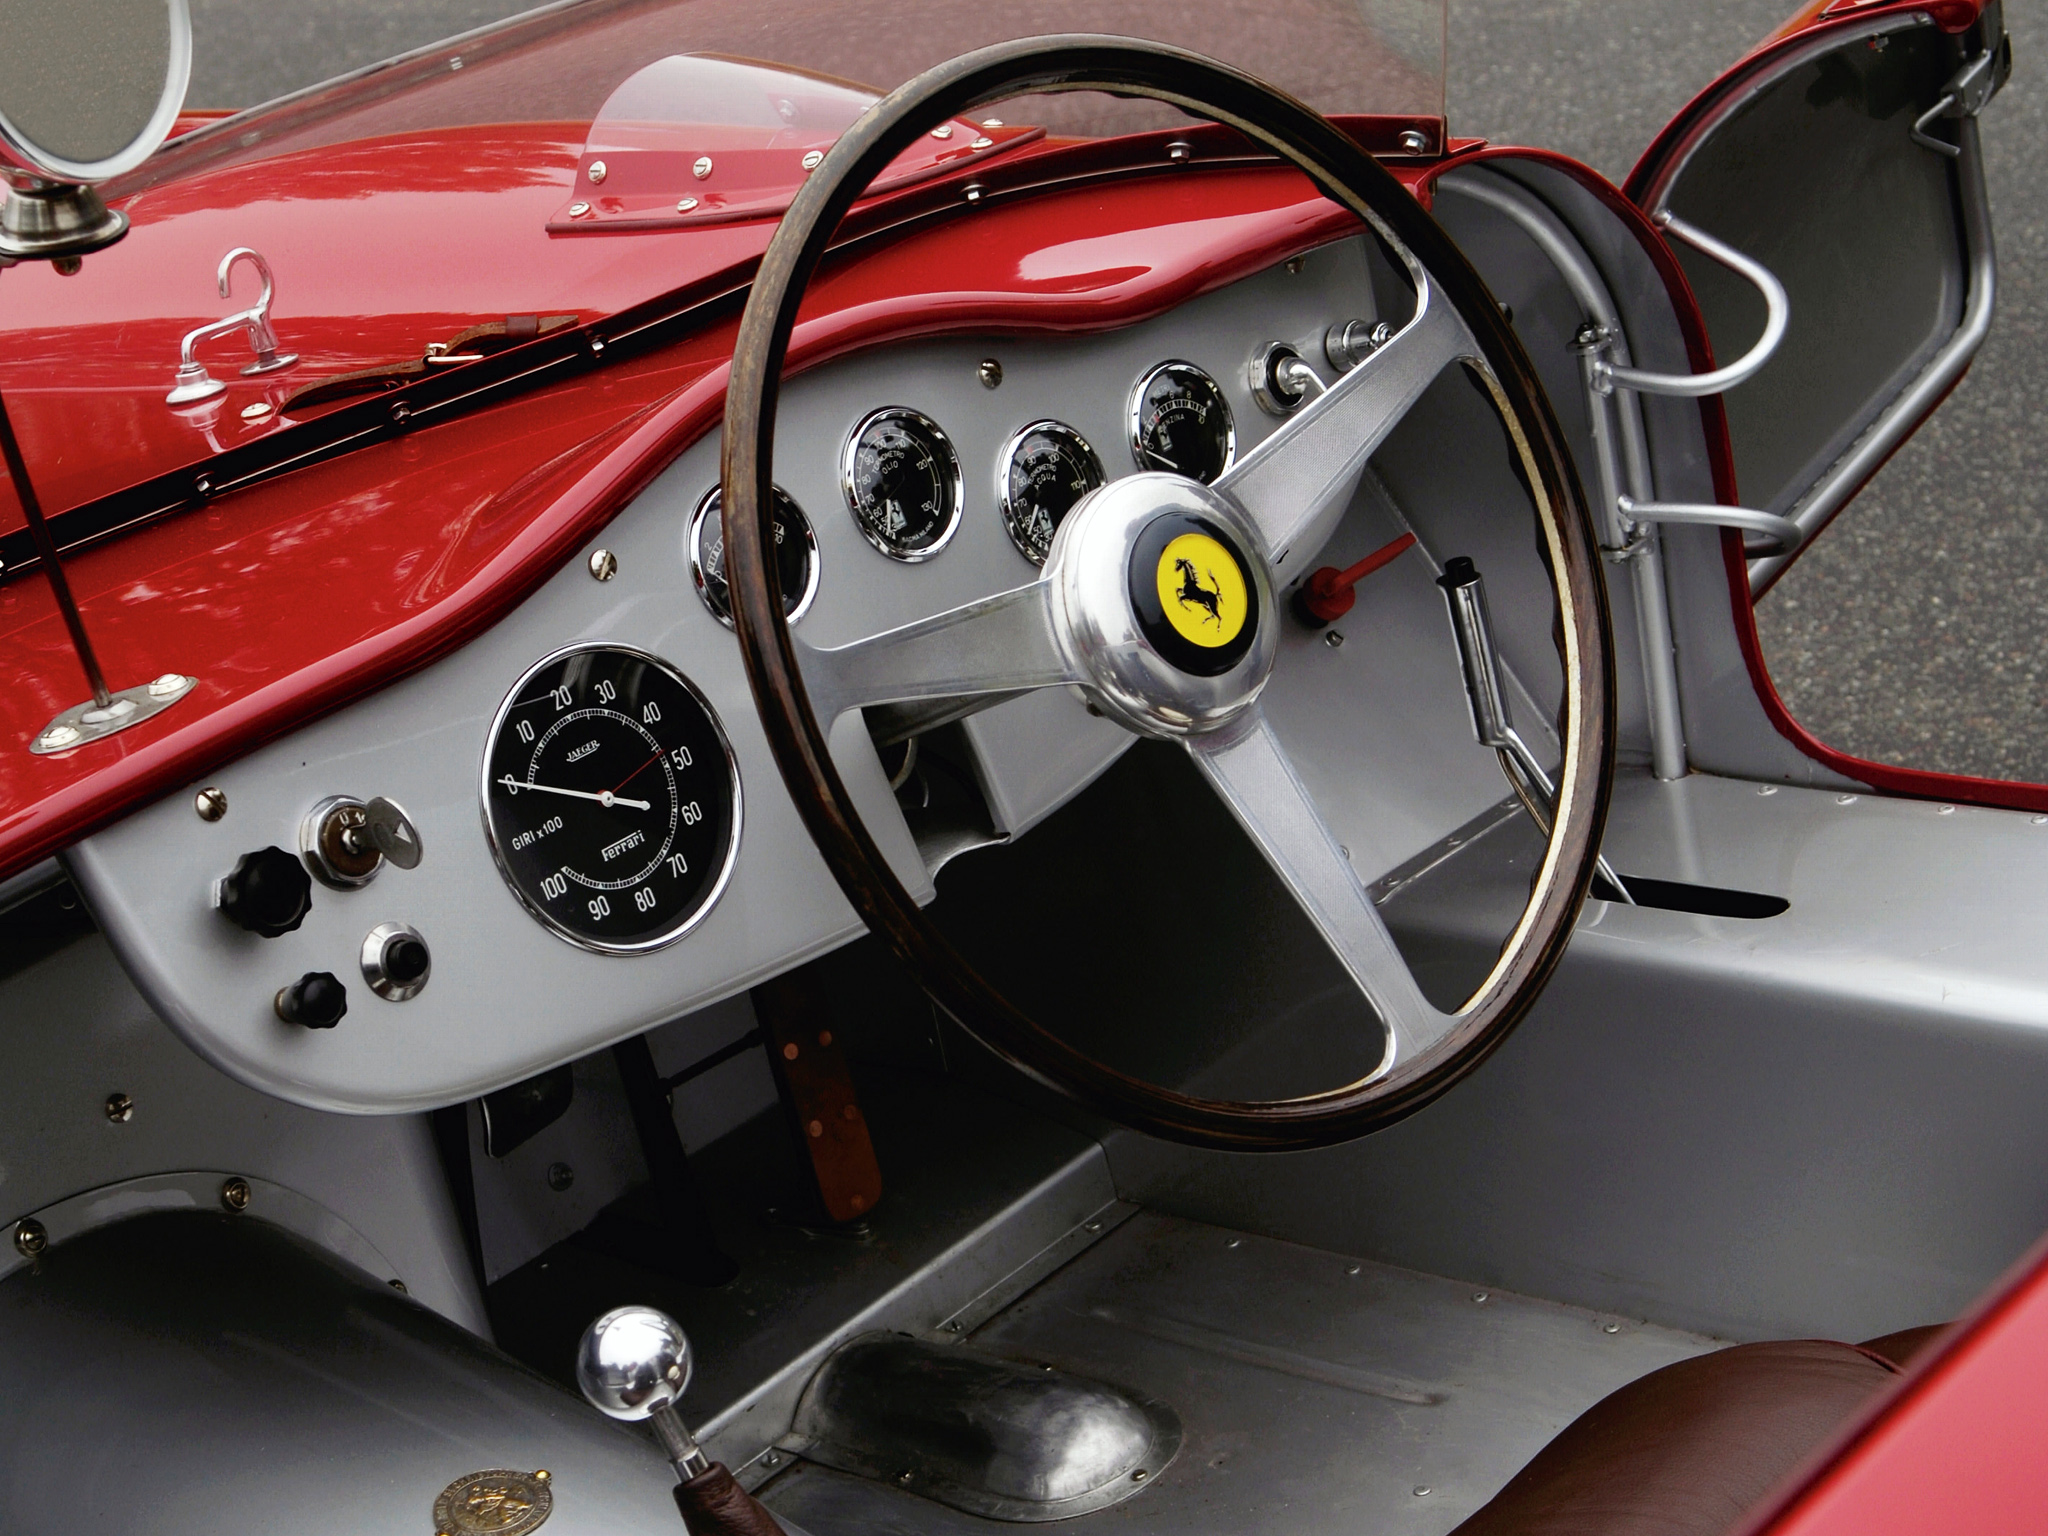 1961 ferrari 250 tri61 race racing supercar classic interior h wallpaper 2048x1536 147854. Black Bedroom Furniture Sets. Home Design Ideas